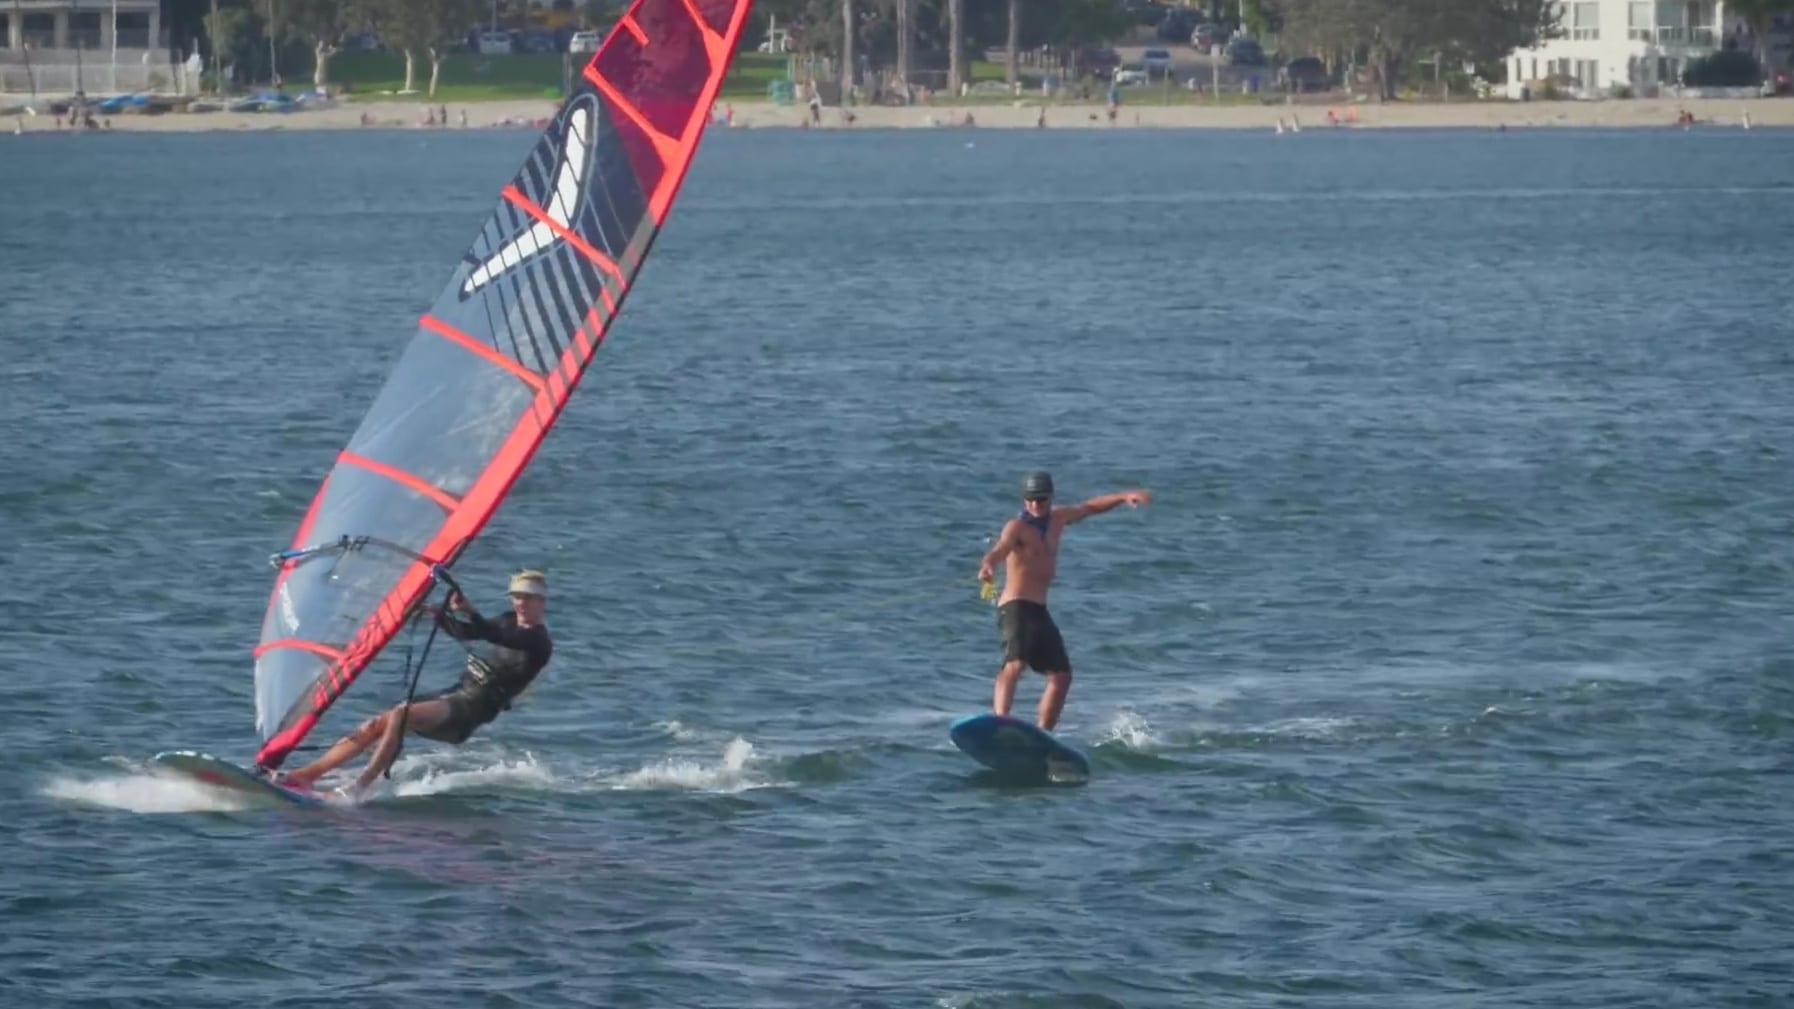 Vidéo de Matty Schweitzer en stand up paddle foil